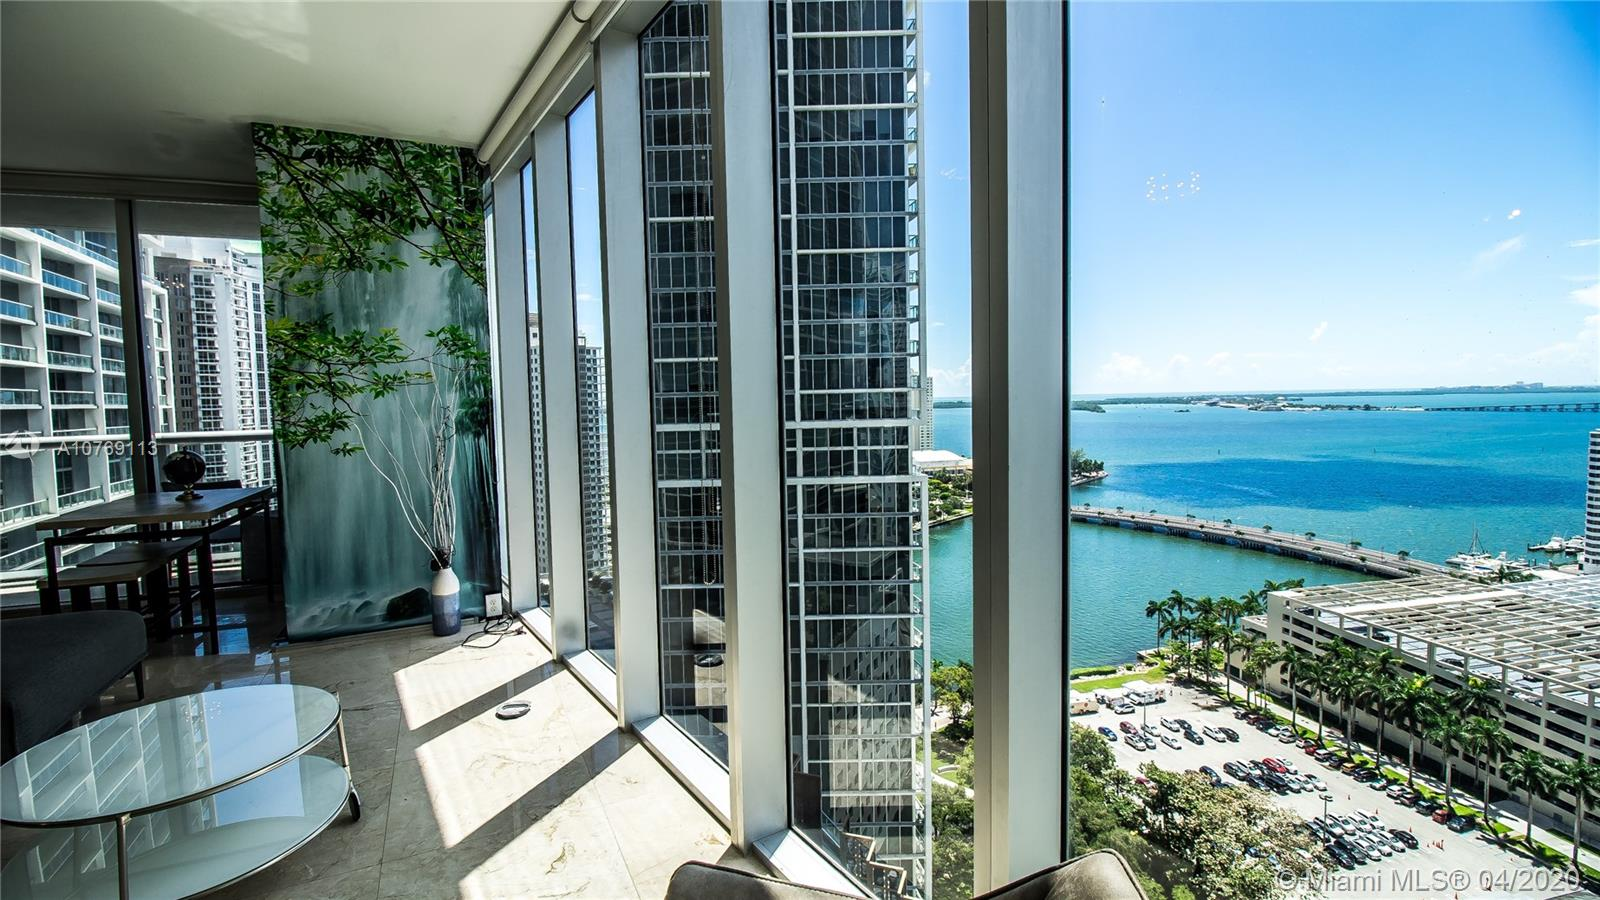 Icon Brickell 3 #2410 - 485 Brickell Ave #2410, Miami, FL 33131